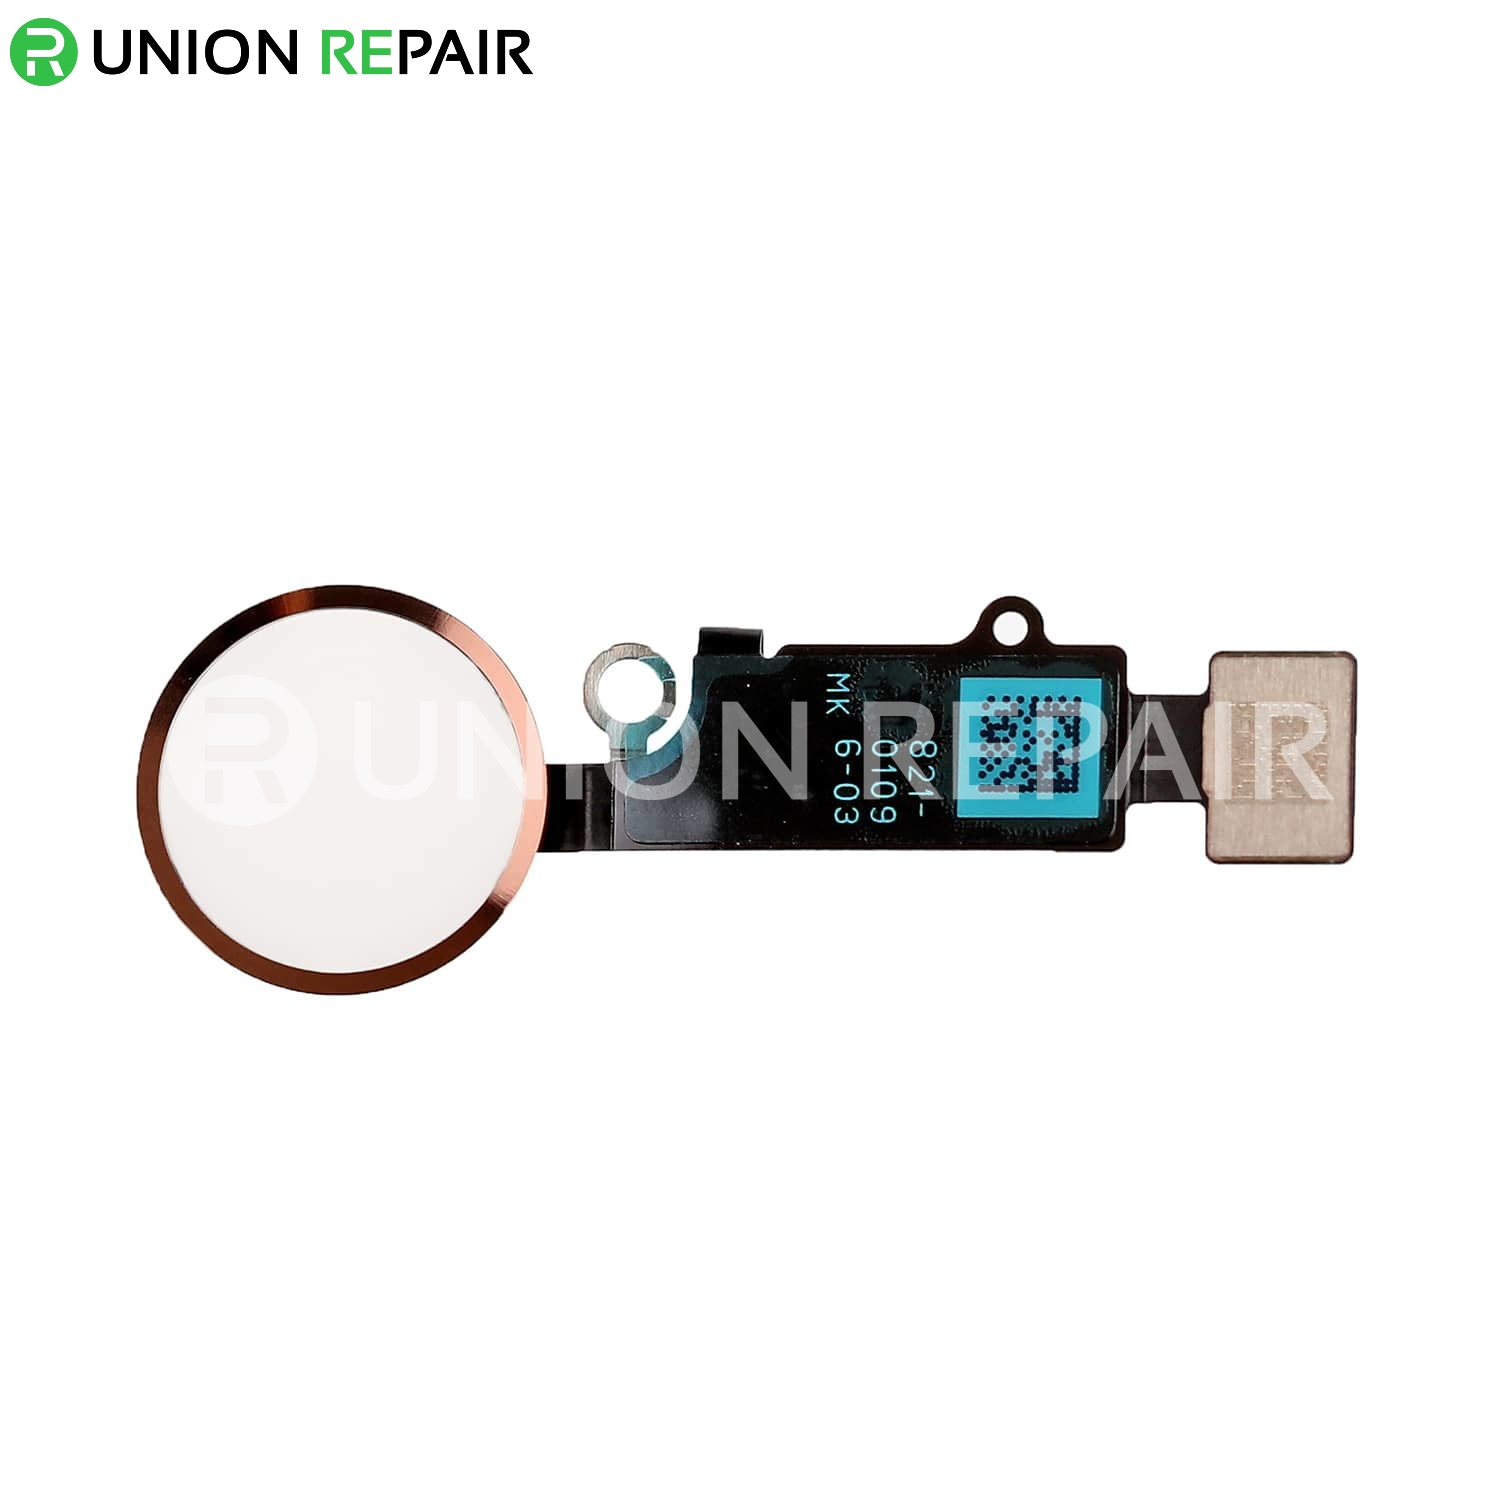 competitive price 880b7 f9c33 Replacement for iPhone 8 Home Button Assembly - Gold